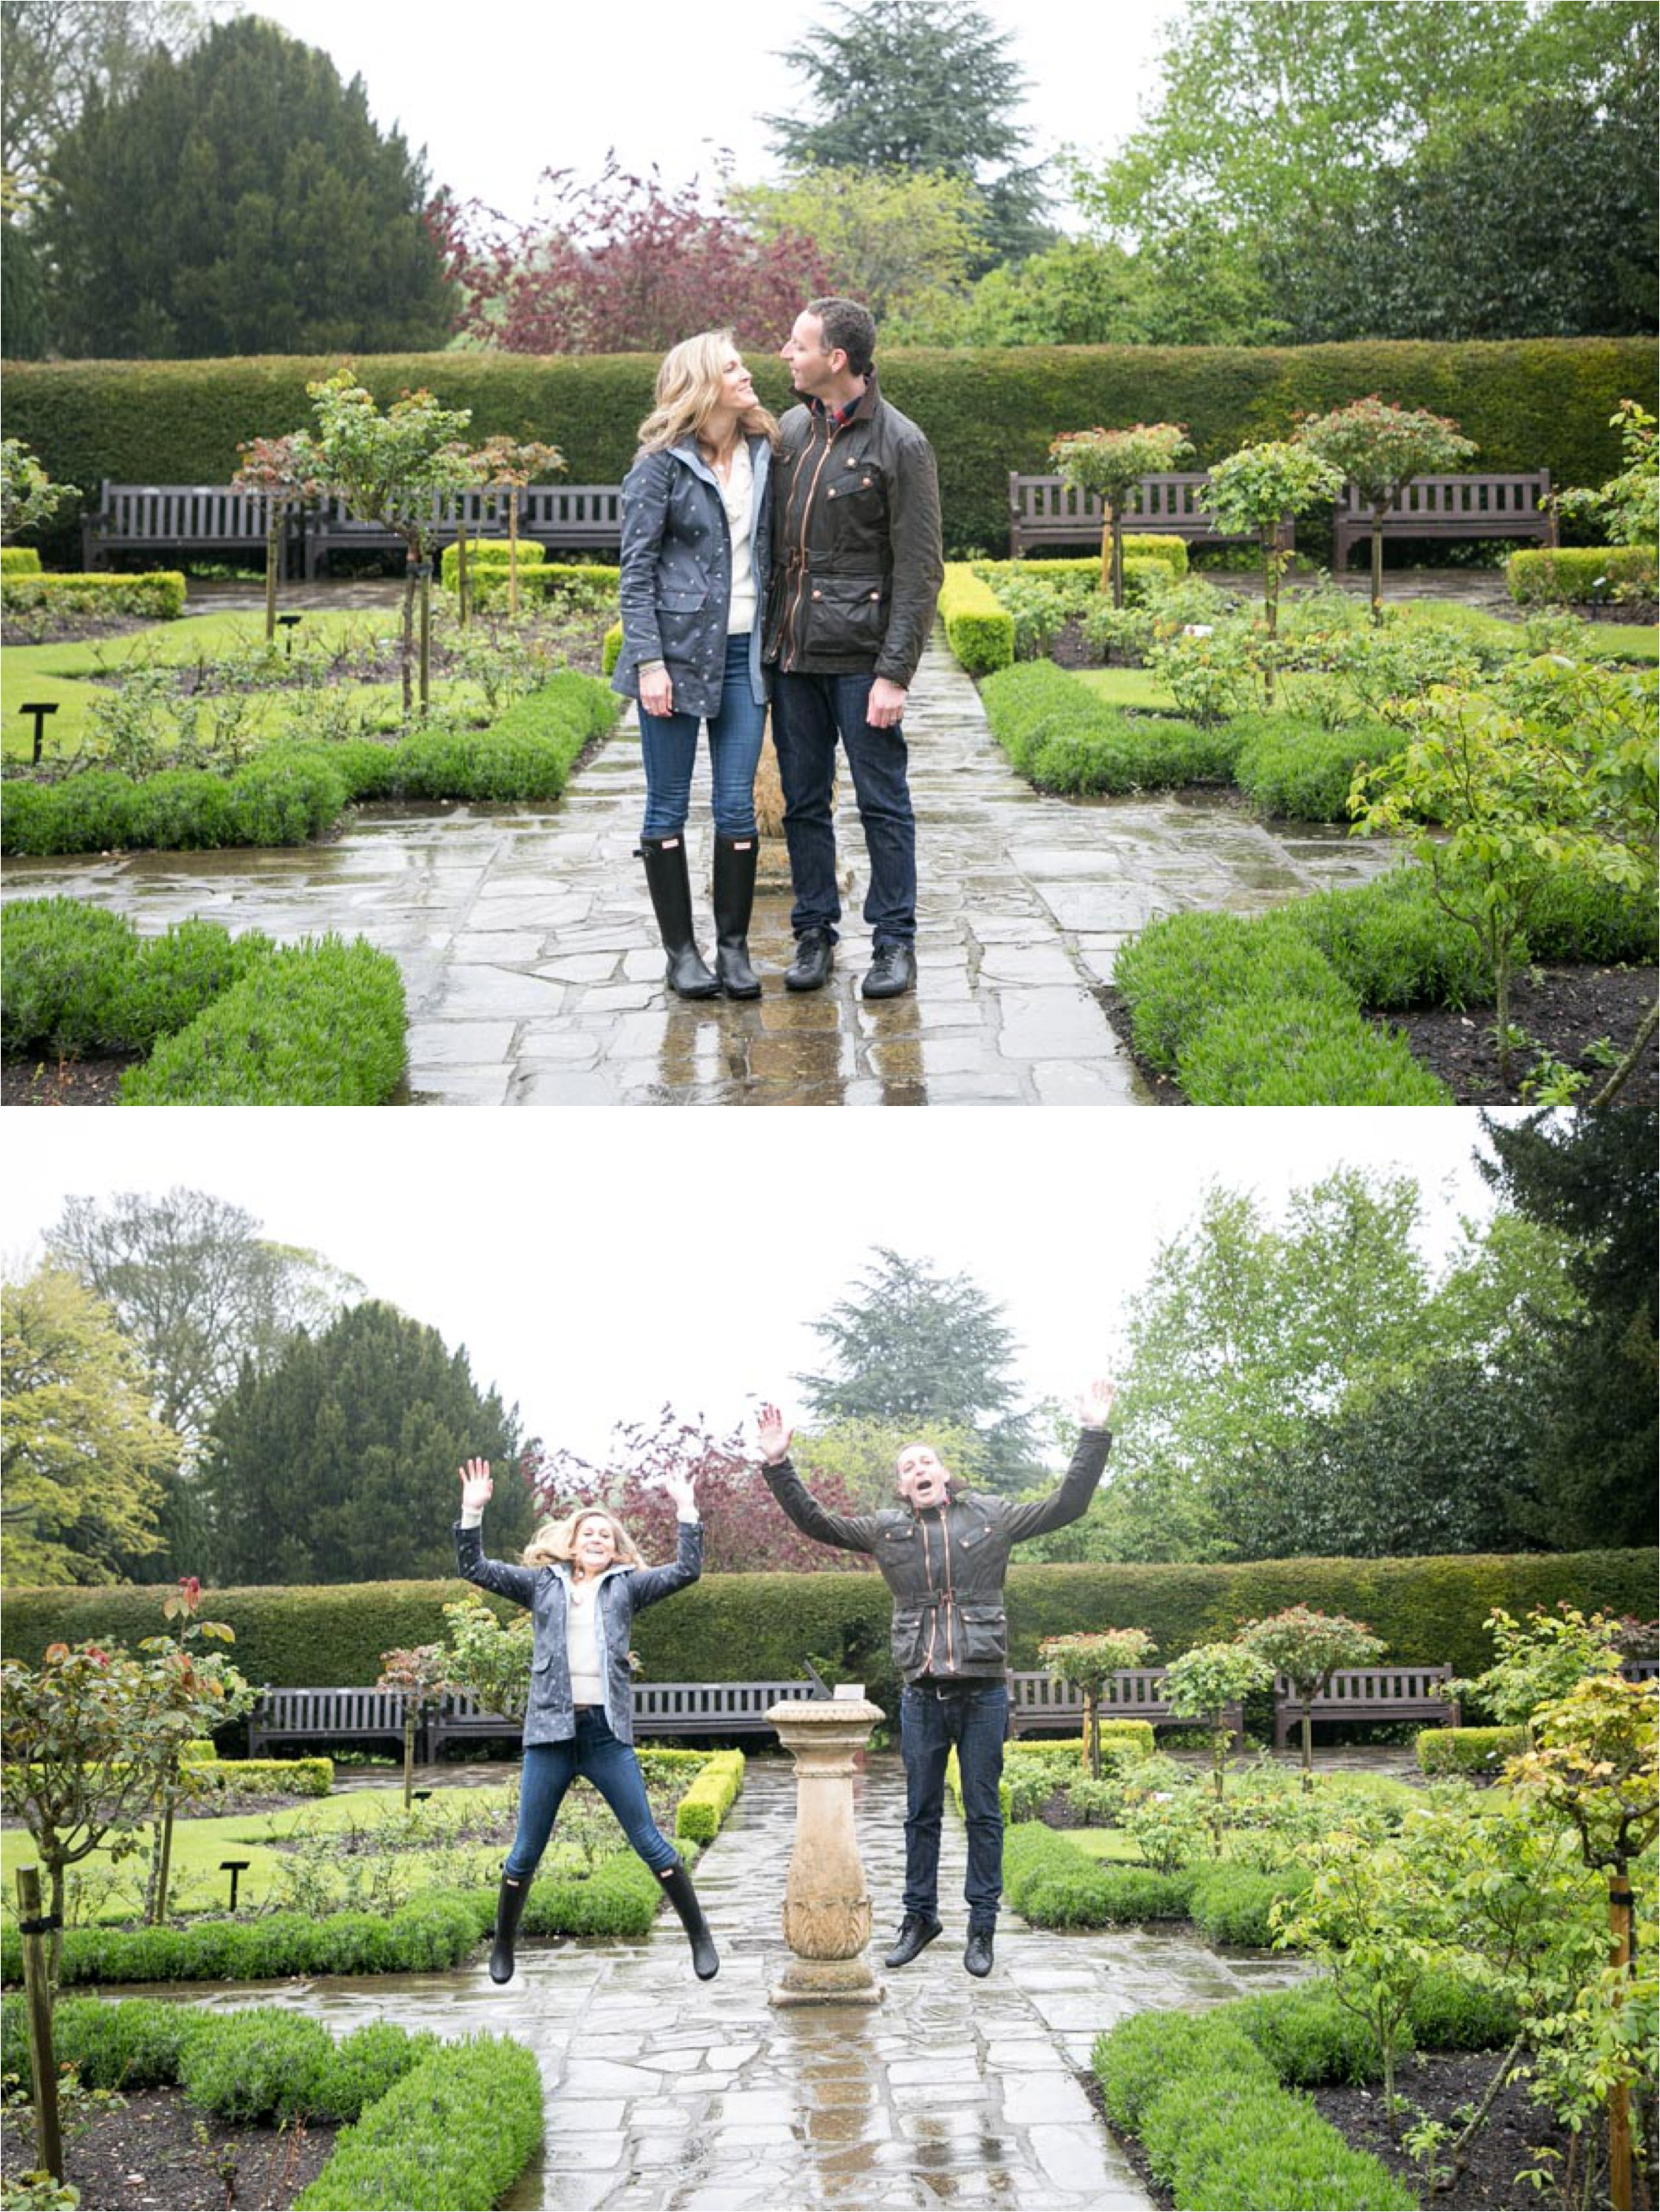 rainy couples photography in the abbey gardens, bury st edmunds